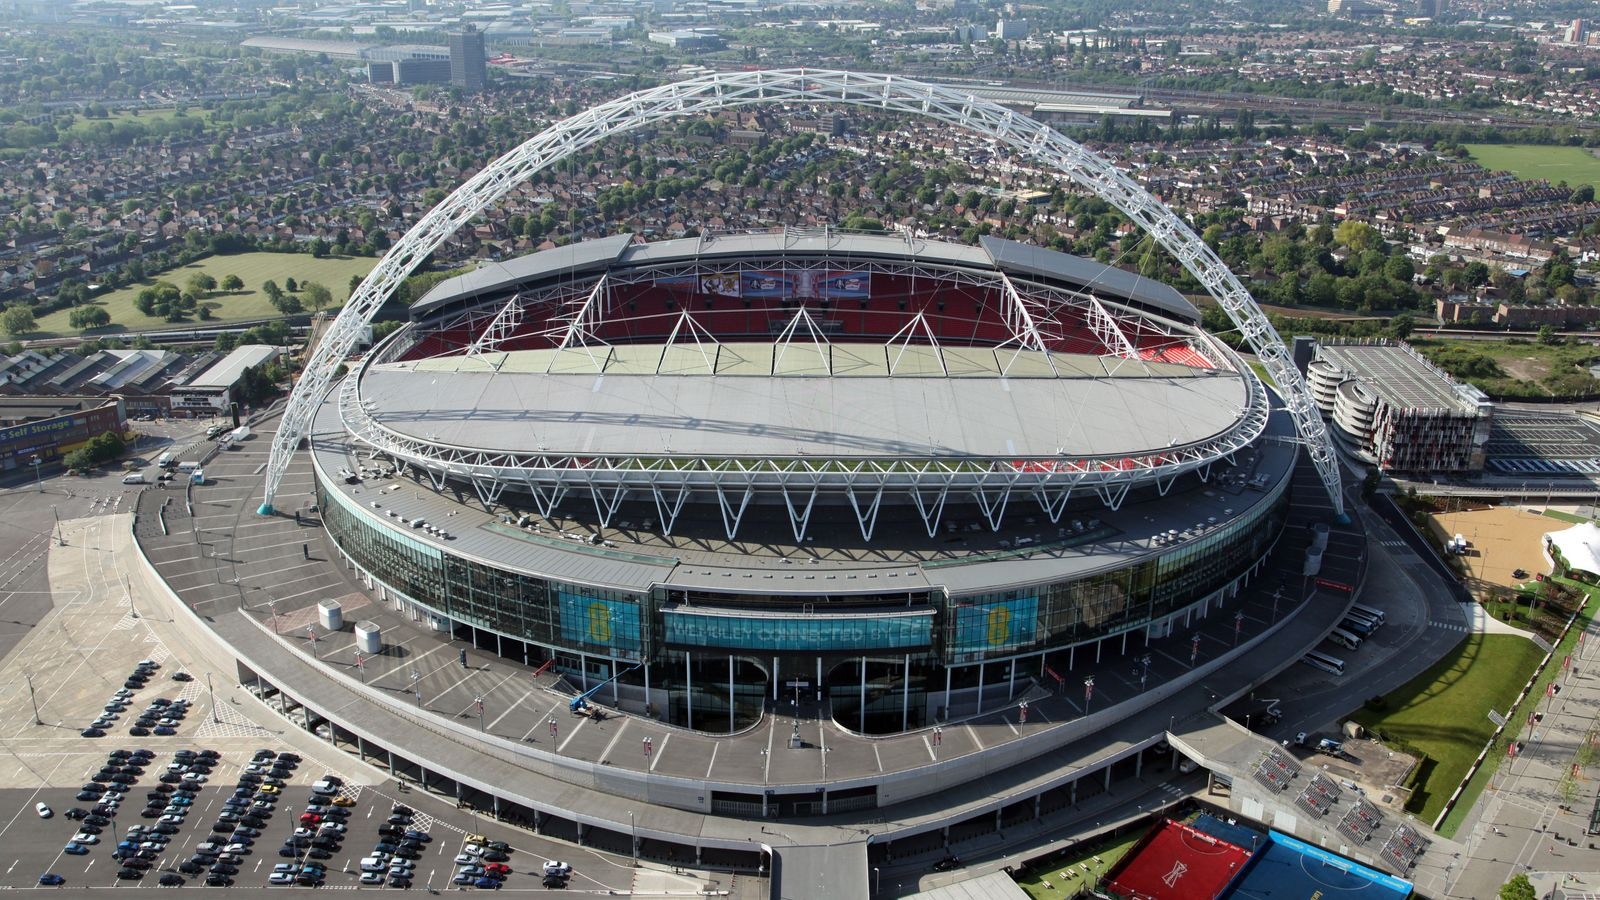 Vaccine Passports Or Proof Of Negative Test To Be Used At Wembley For Euro 2020 Matches